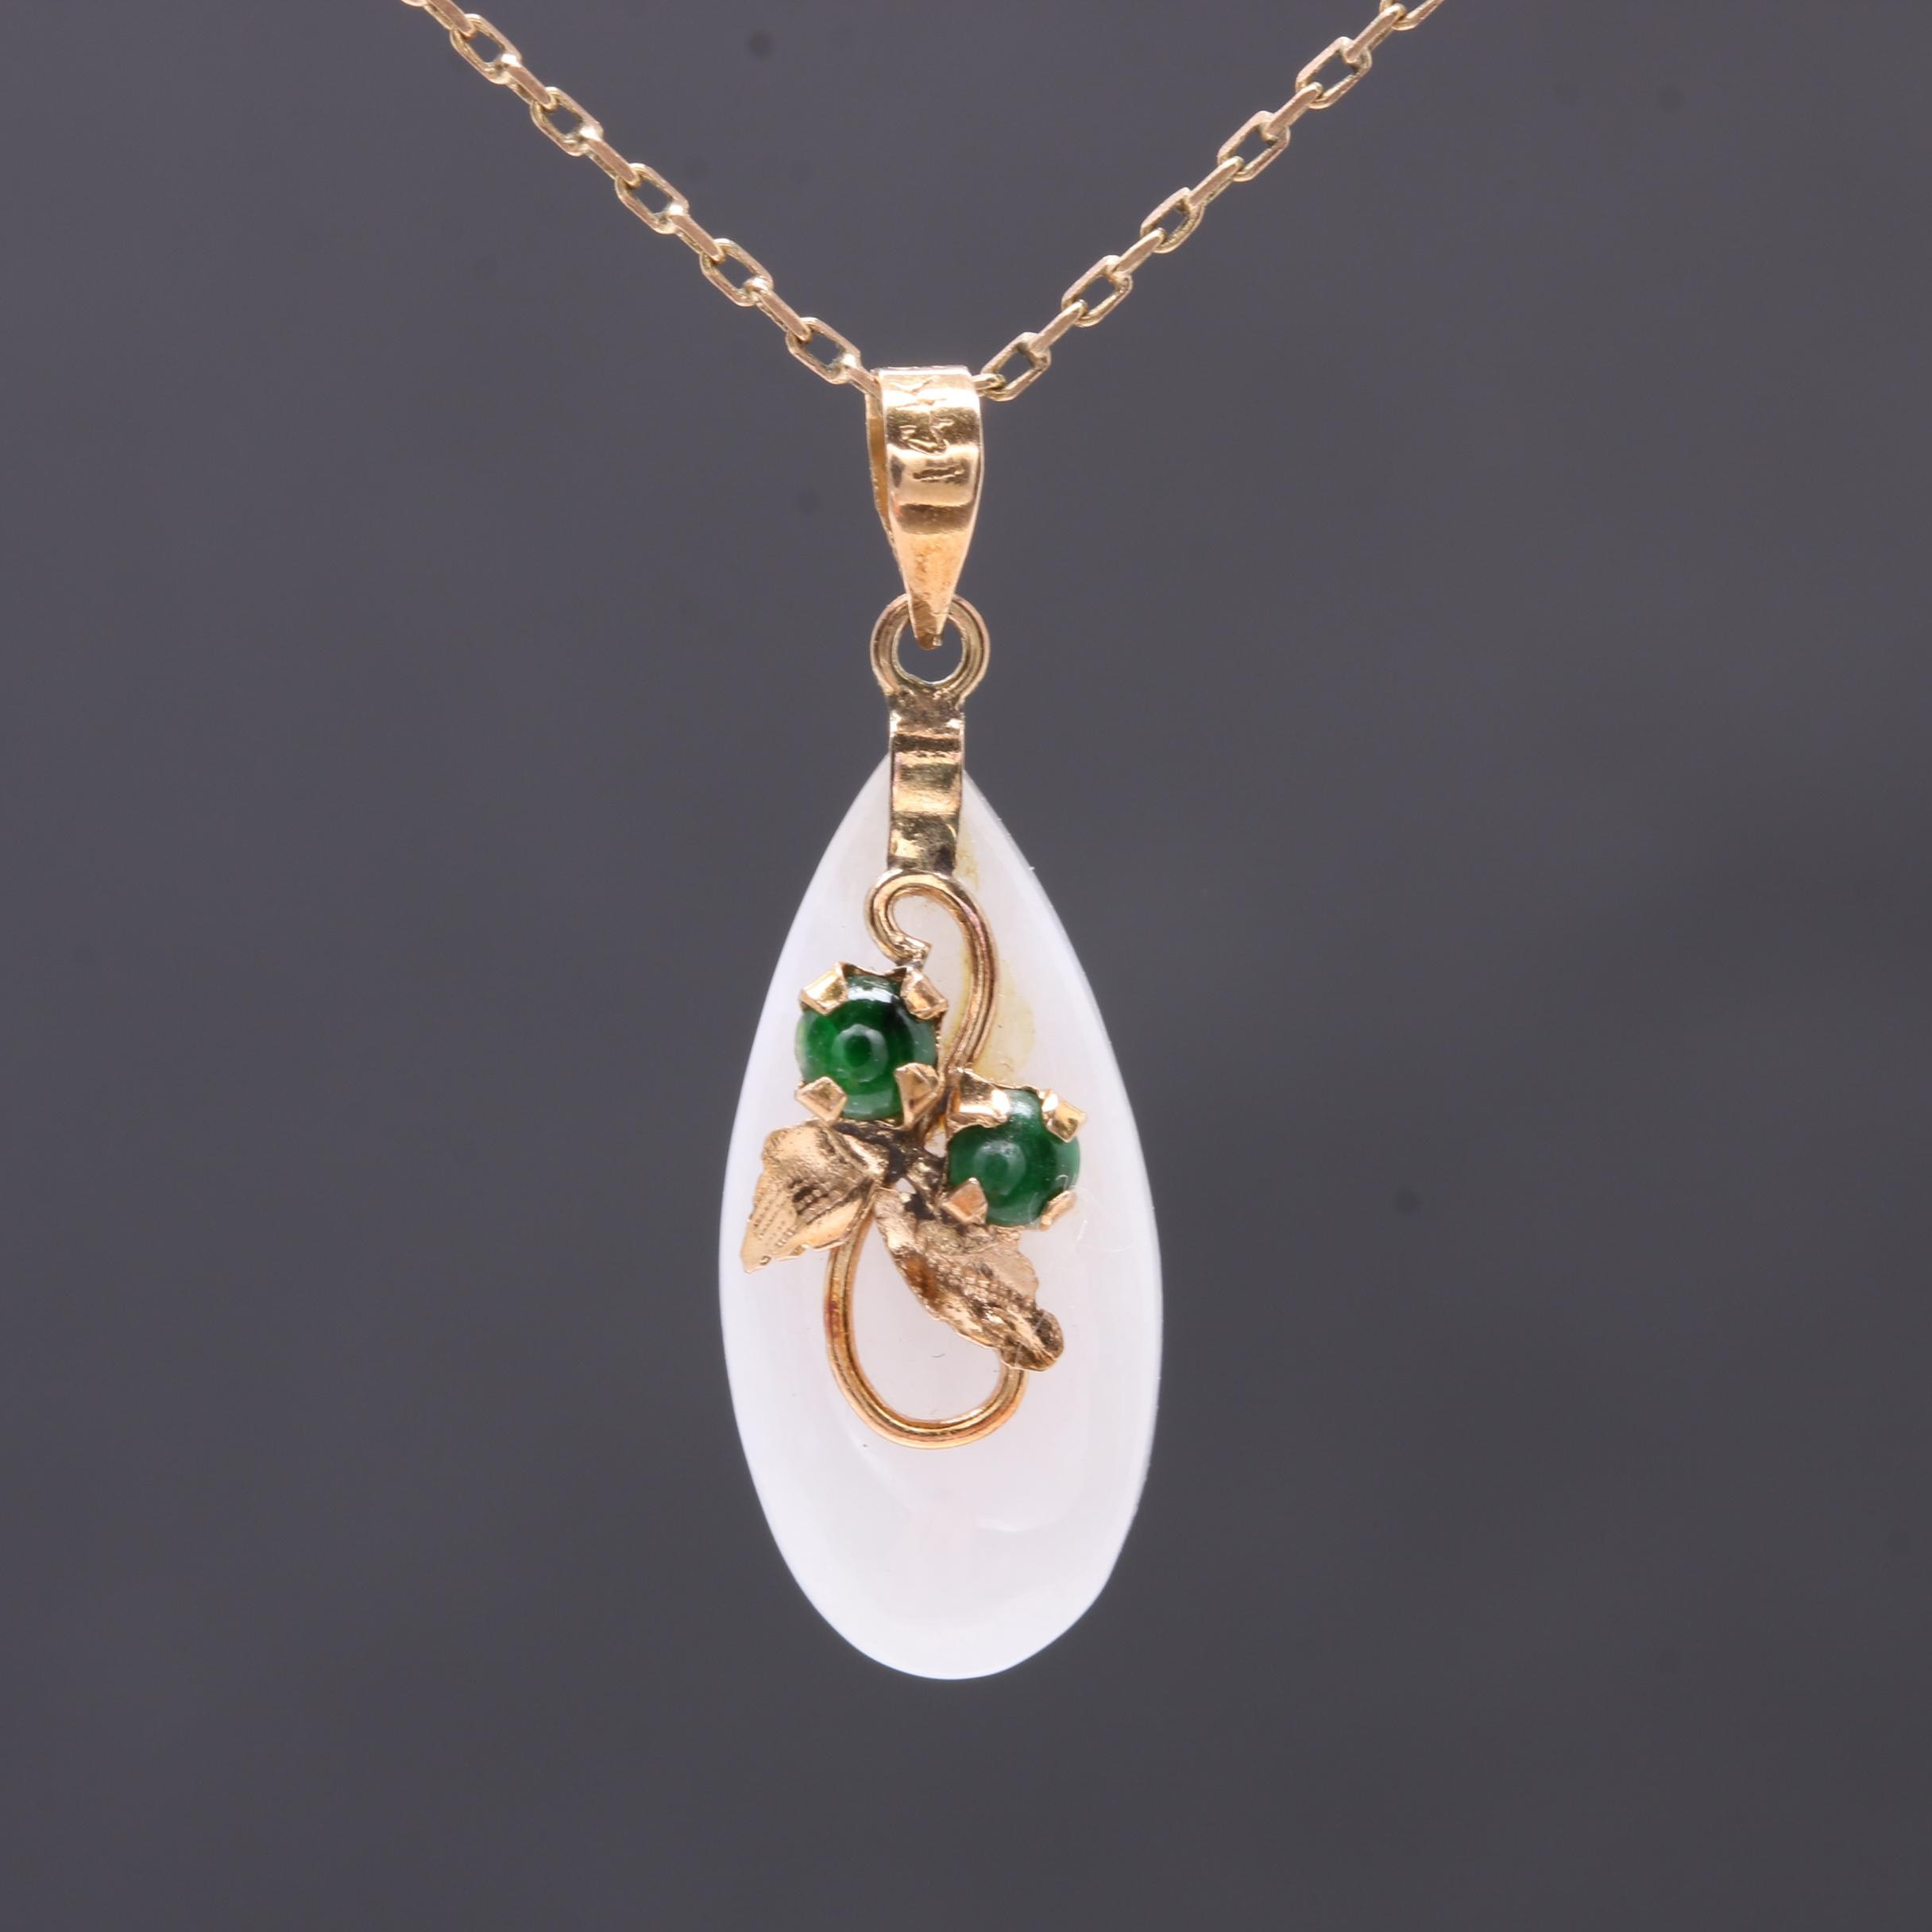 14K Yellow Gold Jadeite and Nephrite Pendant Necklace with 10K Yellow Gold Chain